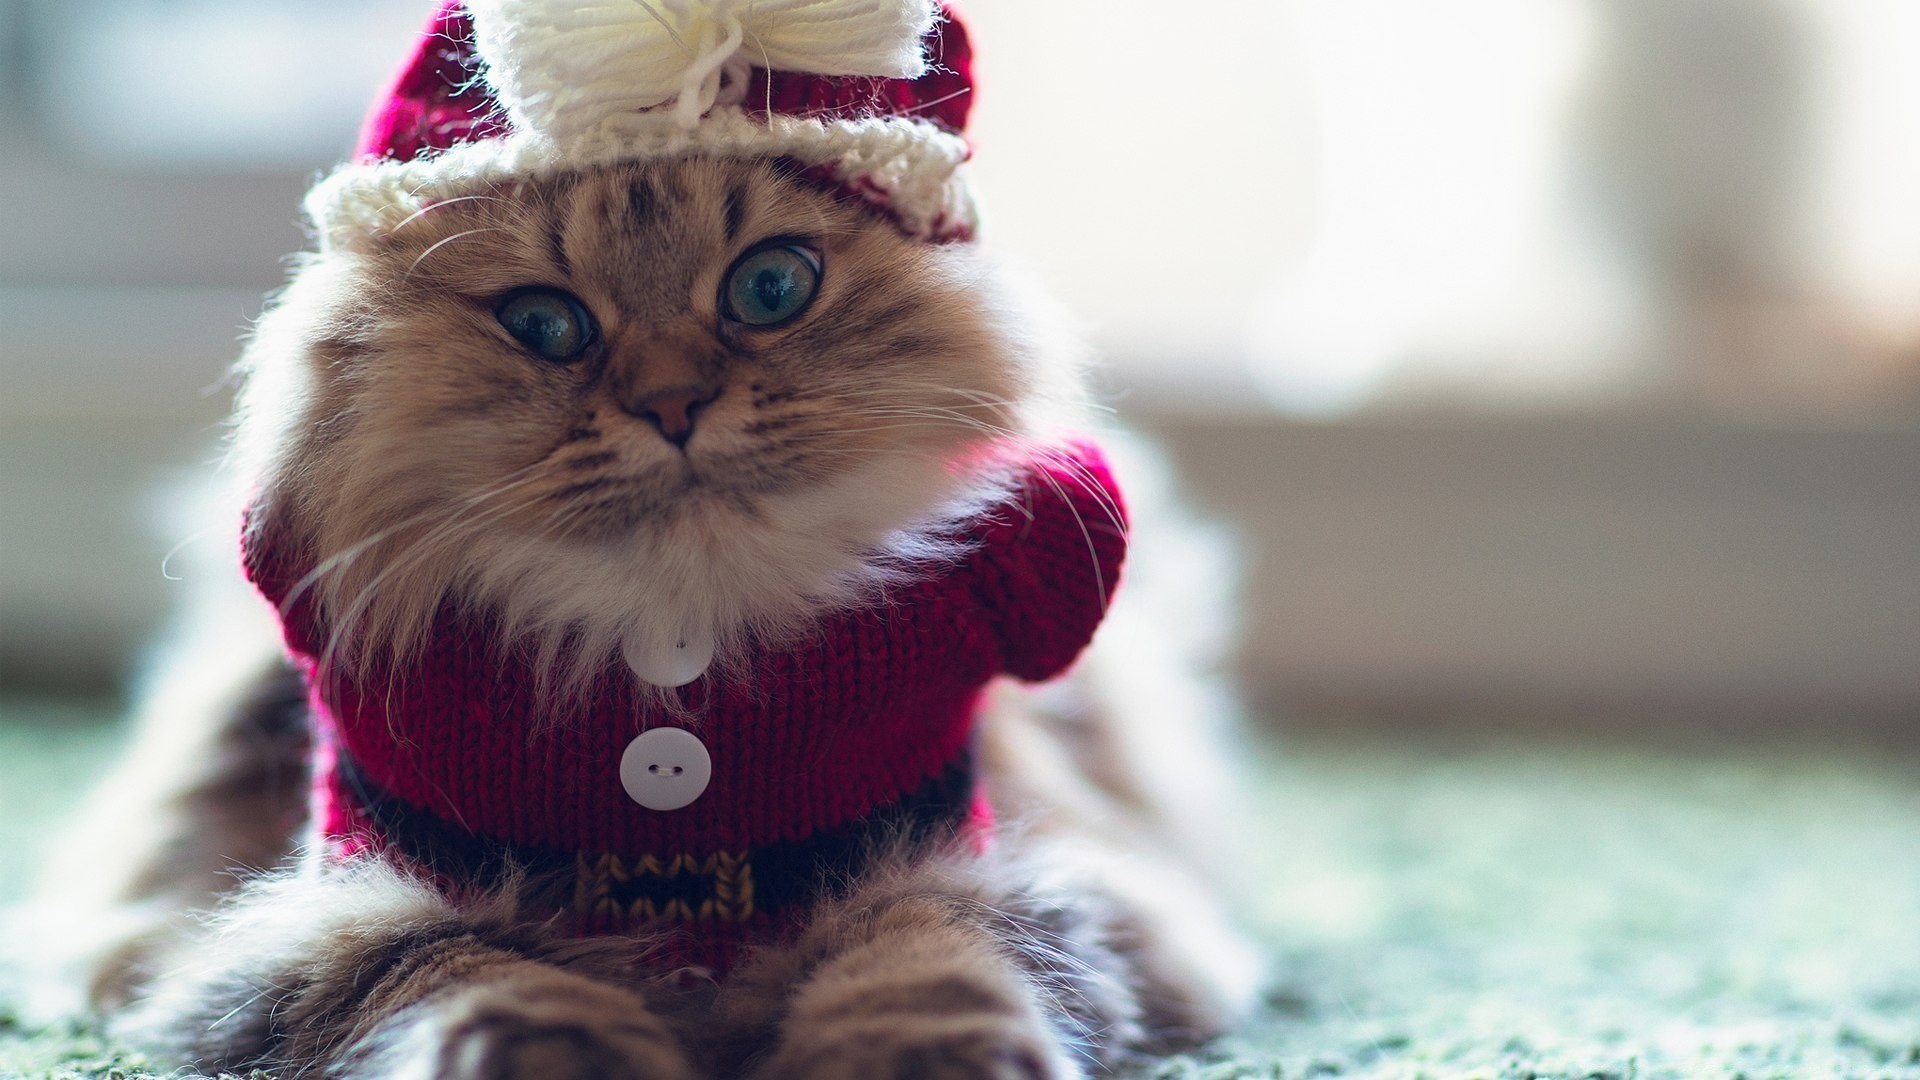 Funny Kitty Desktop Wallpapers For Free